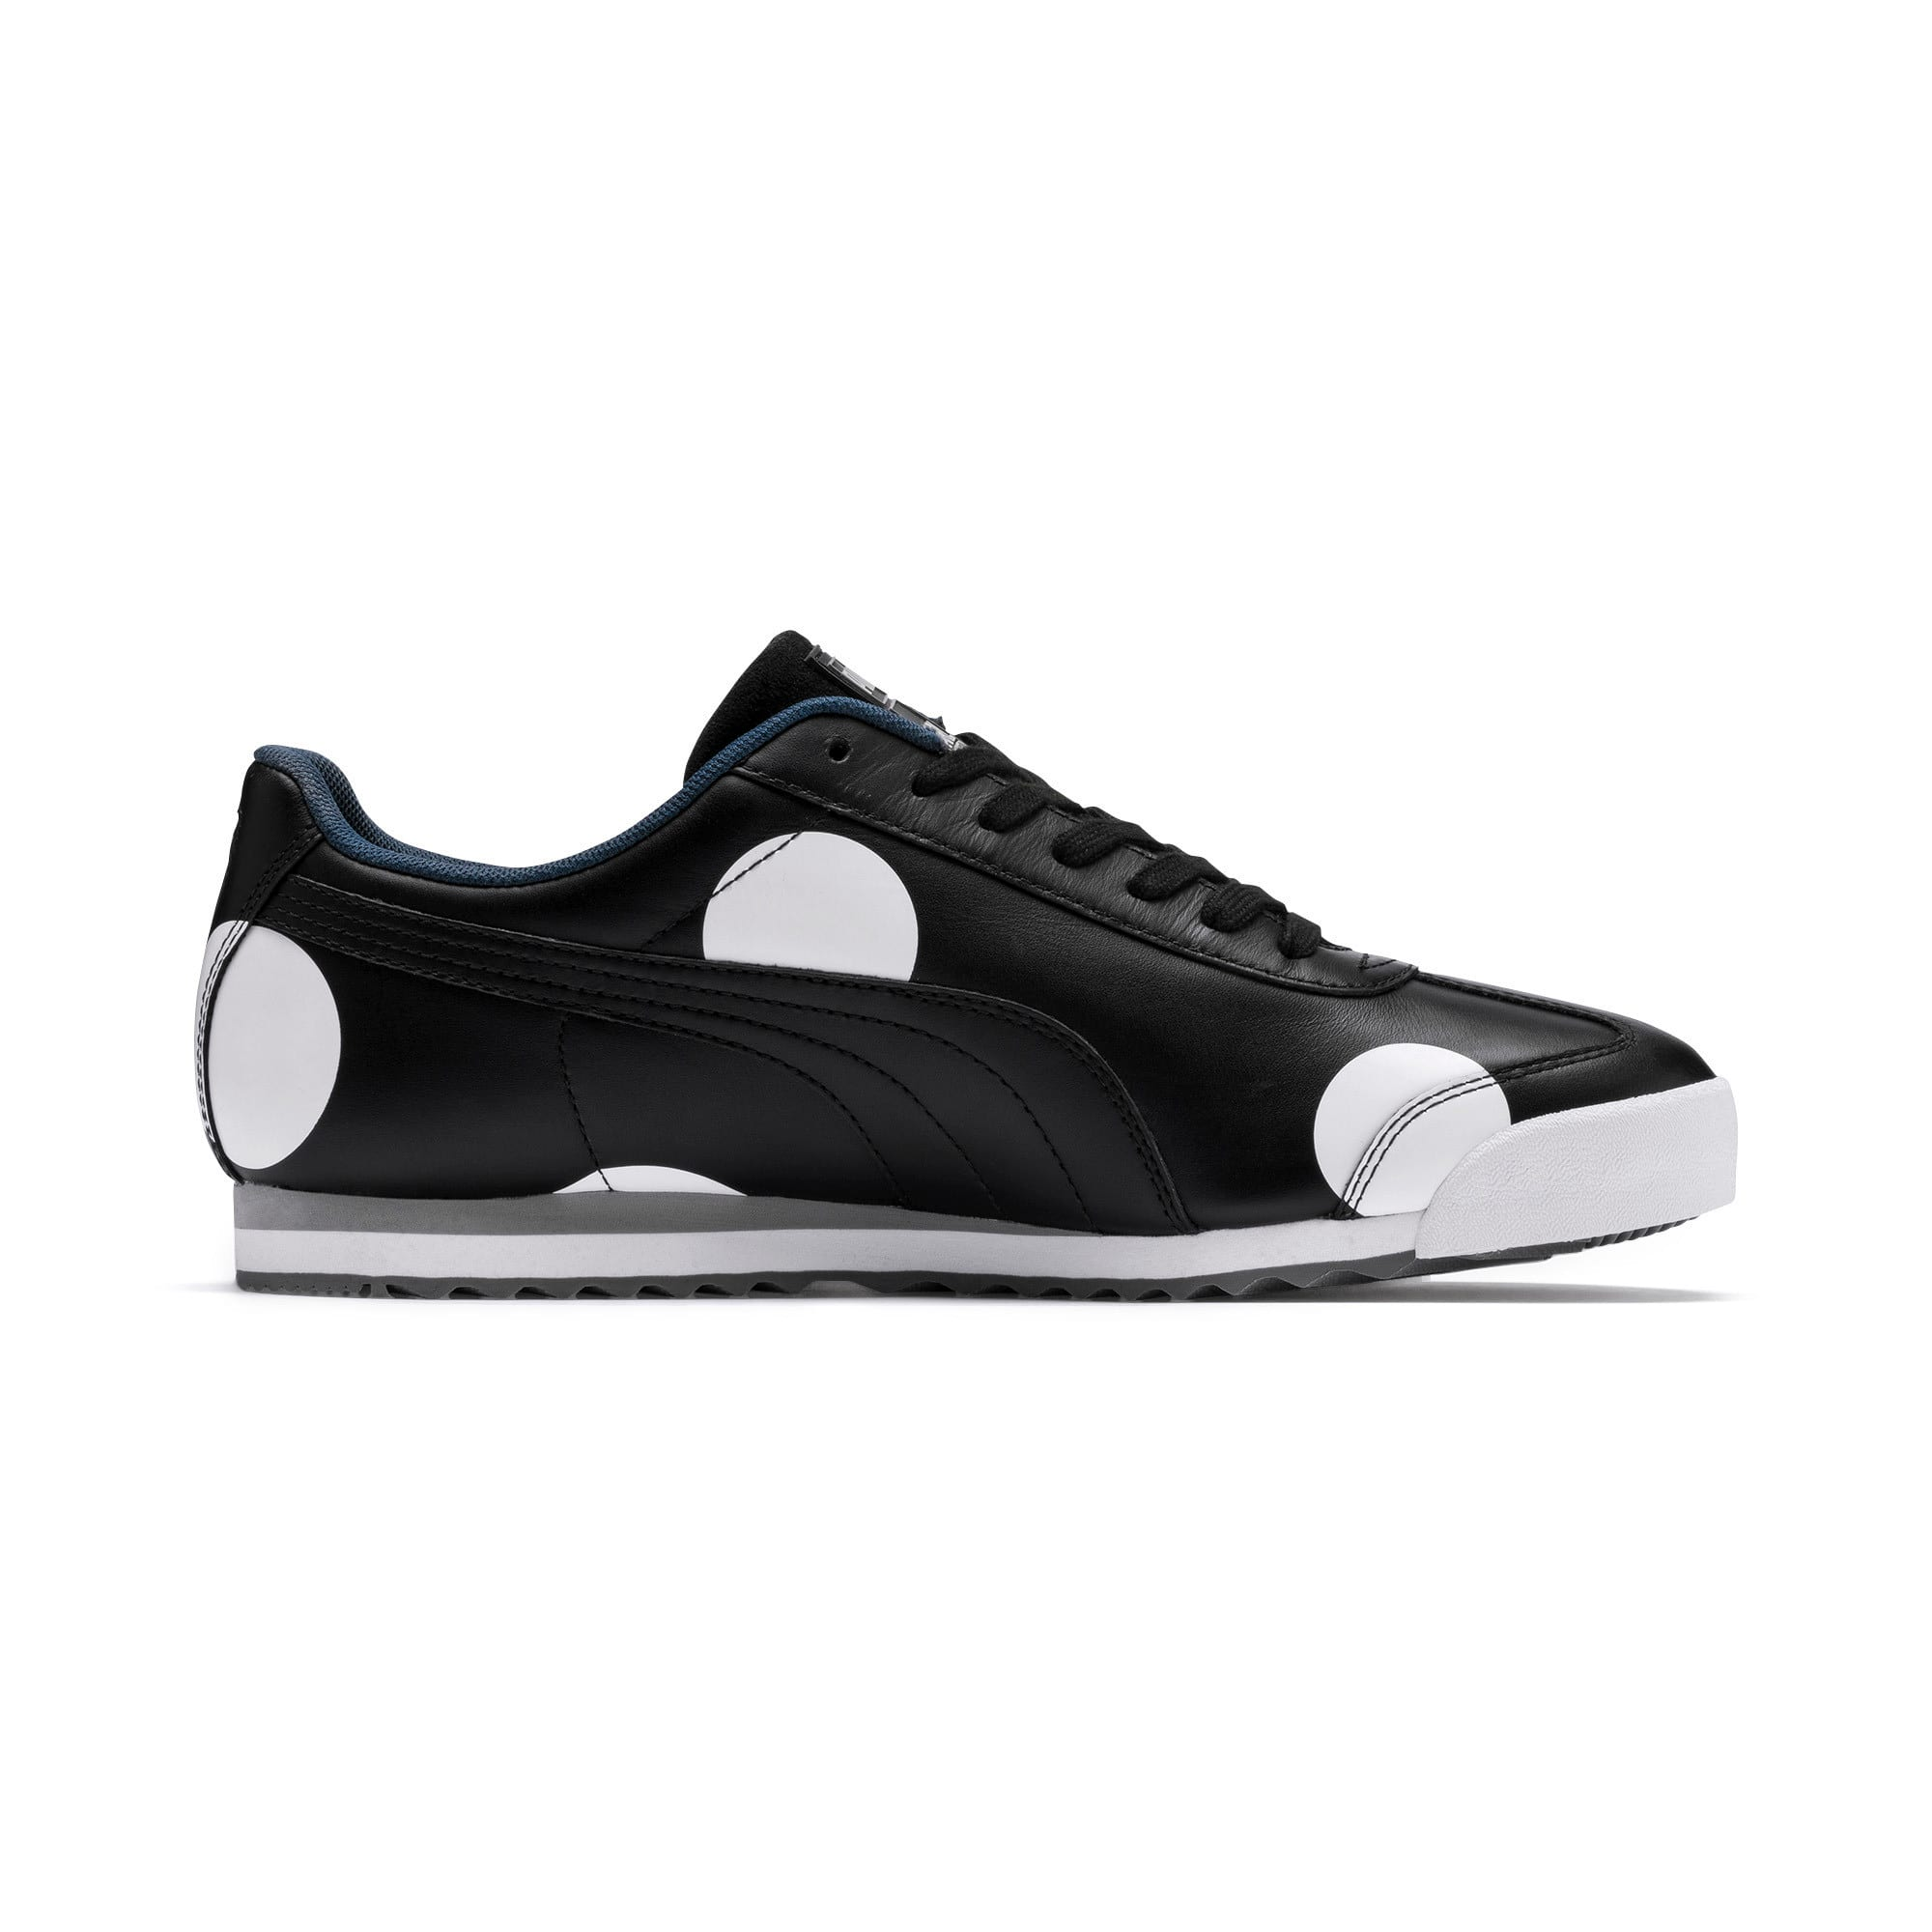 Thumbnail 5 of Zapatillas Roma PUMA x KARL LAGERFELD, Puma Black, medium